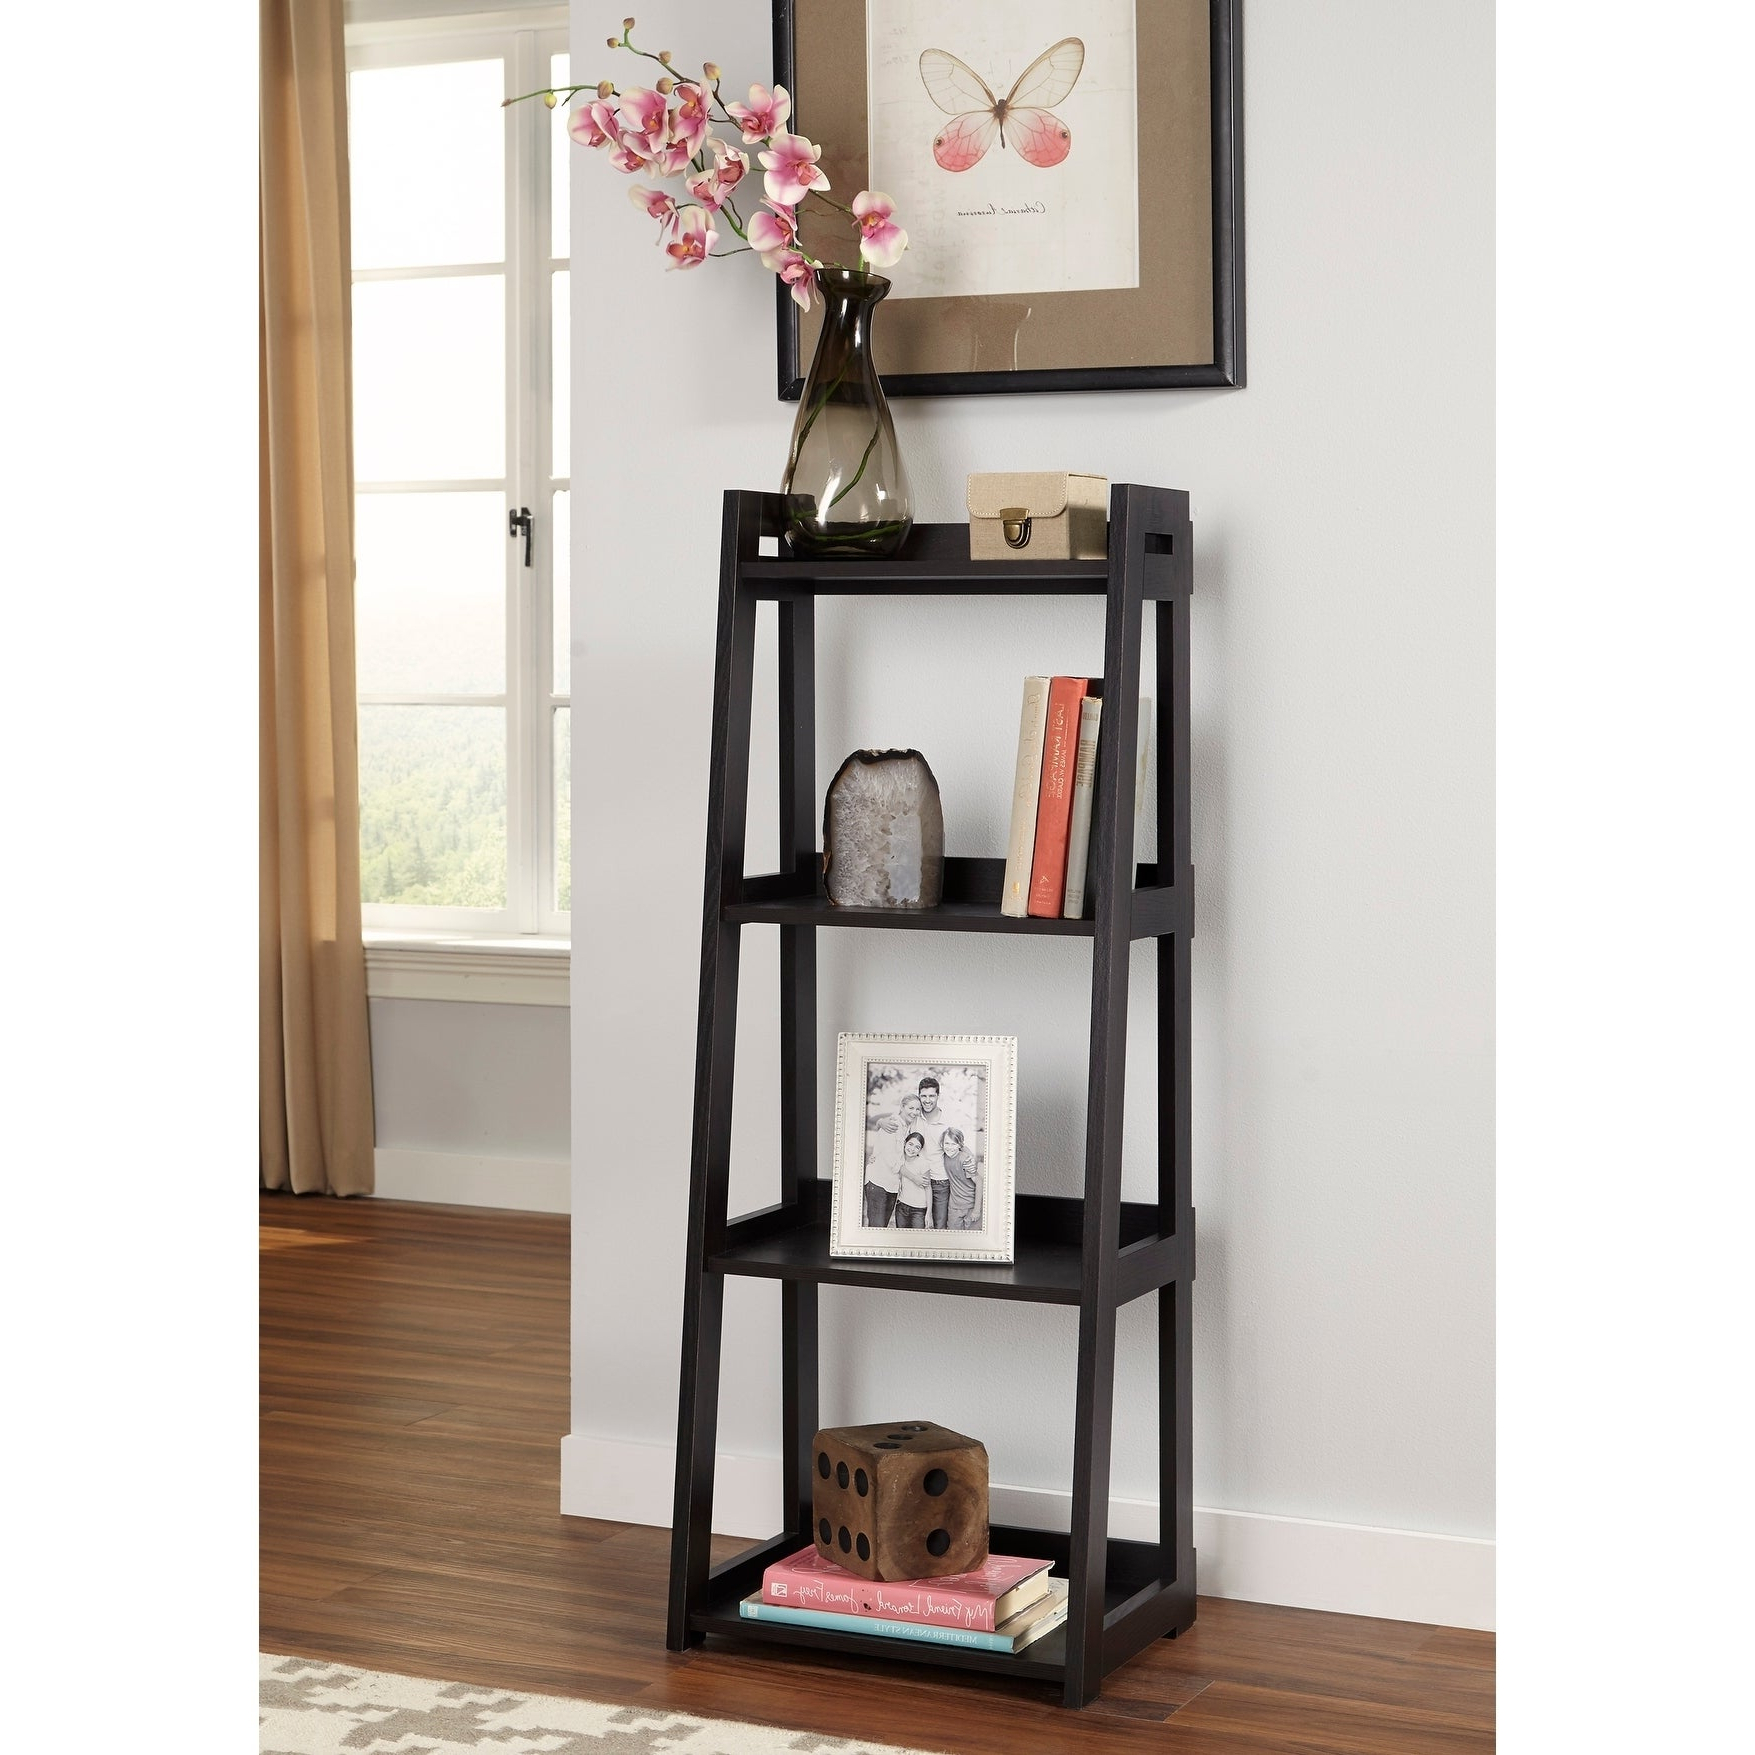 Closetmaid No Tool Assembly Narrow 4 Tier Ladder Shelf Within 2019 Narrow Ladder Bookcases (View 5 of 20)